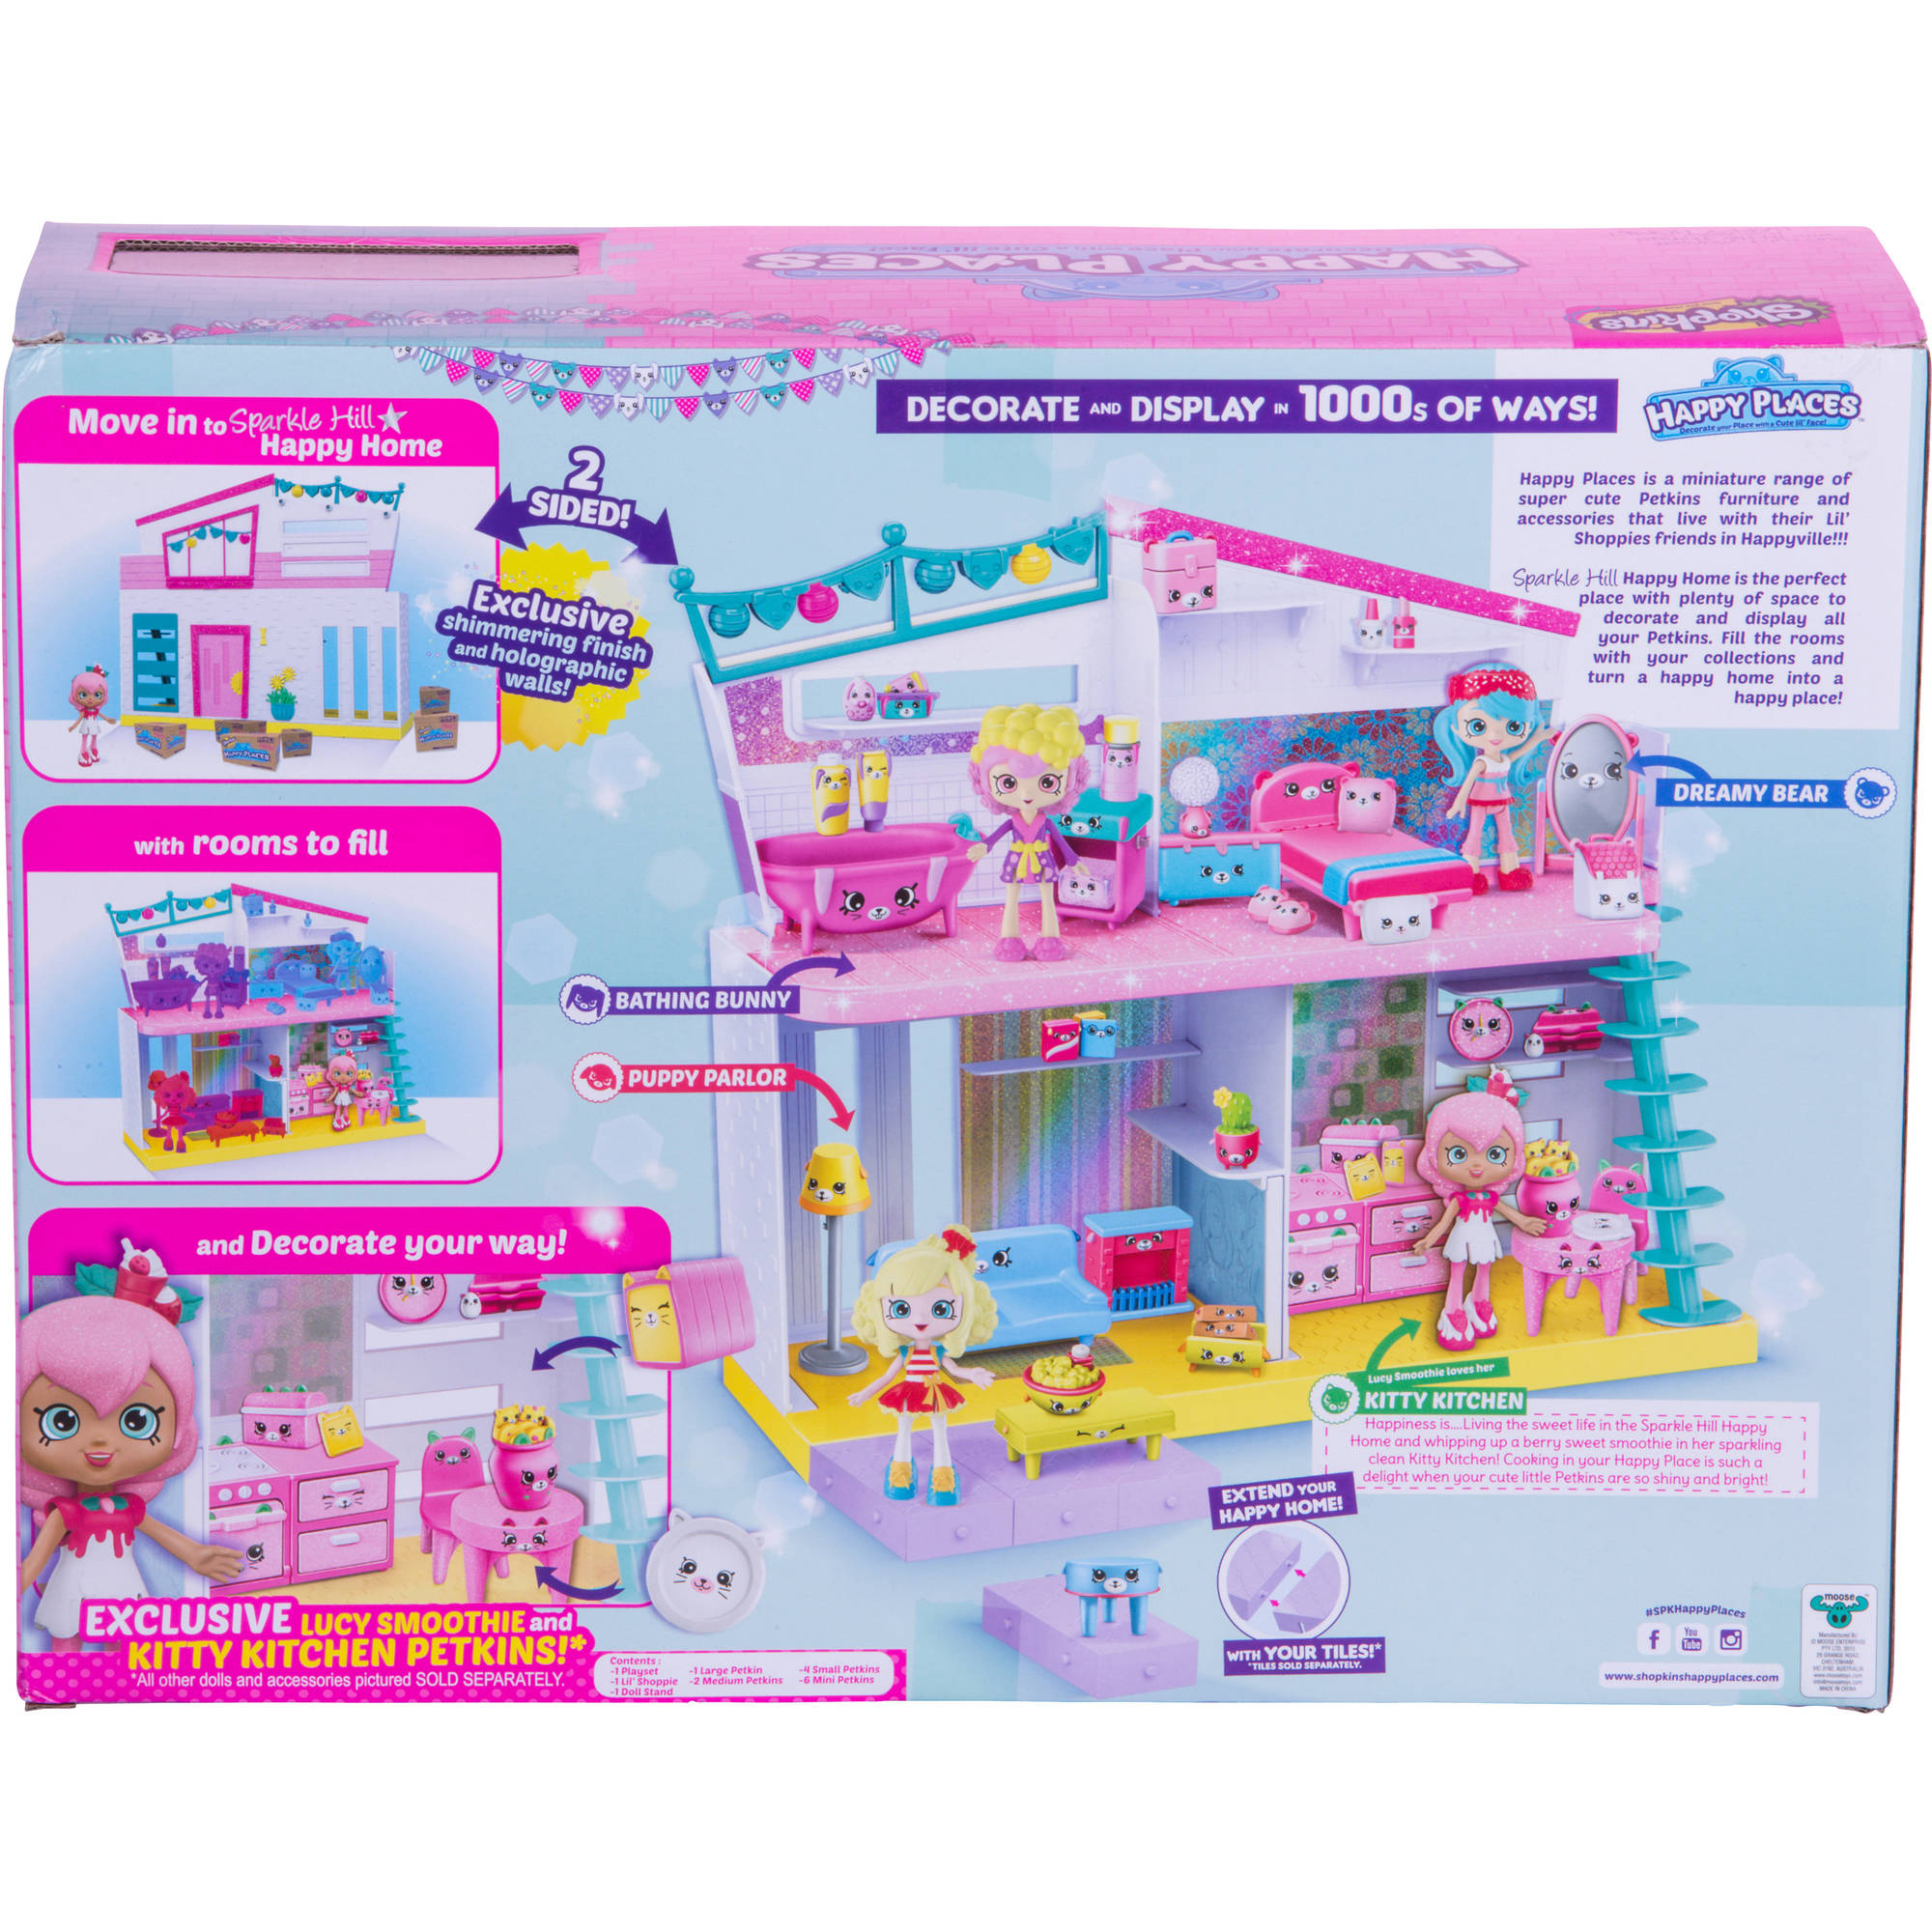 Shopkins Happy Places Sparkle Hill Happy Home Dollhouses